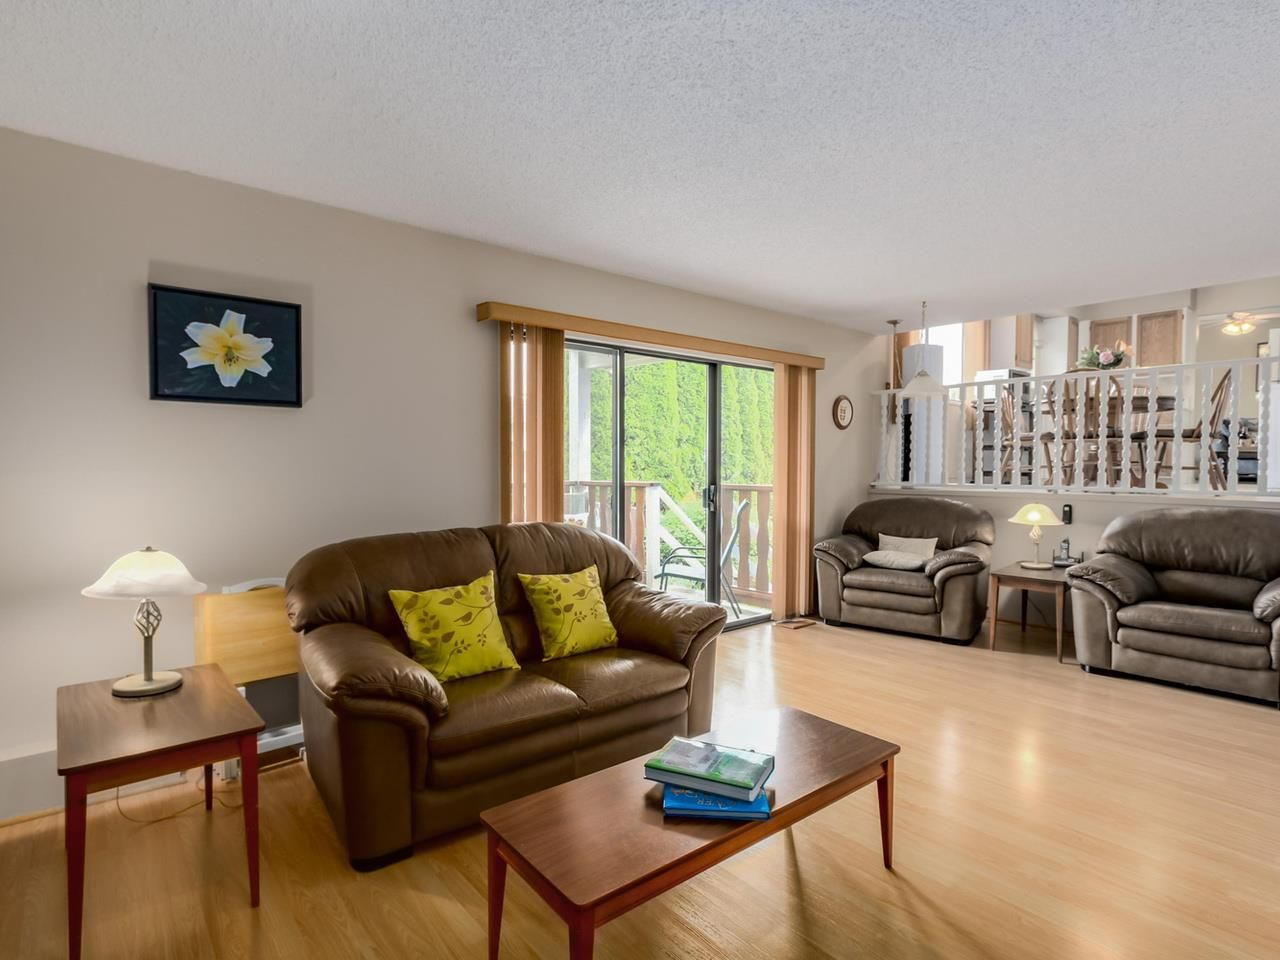 Photo 6: Photos: 4032 AYLING Street in Port Coquitlam: Oxford Heights House for sale : MLS®# R2074528